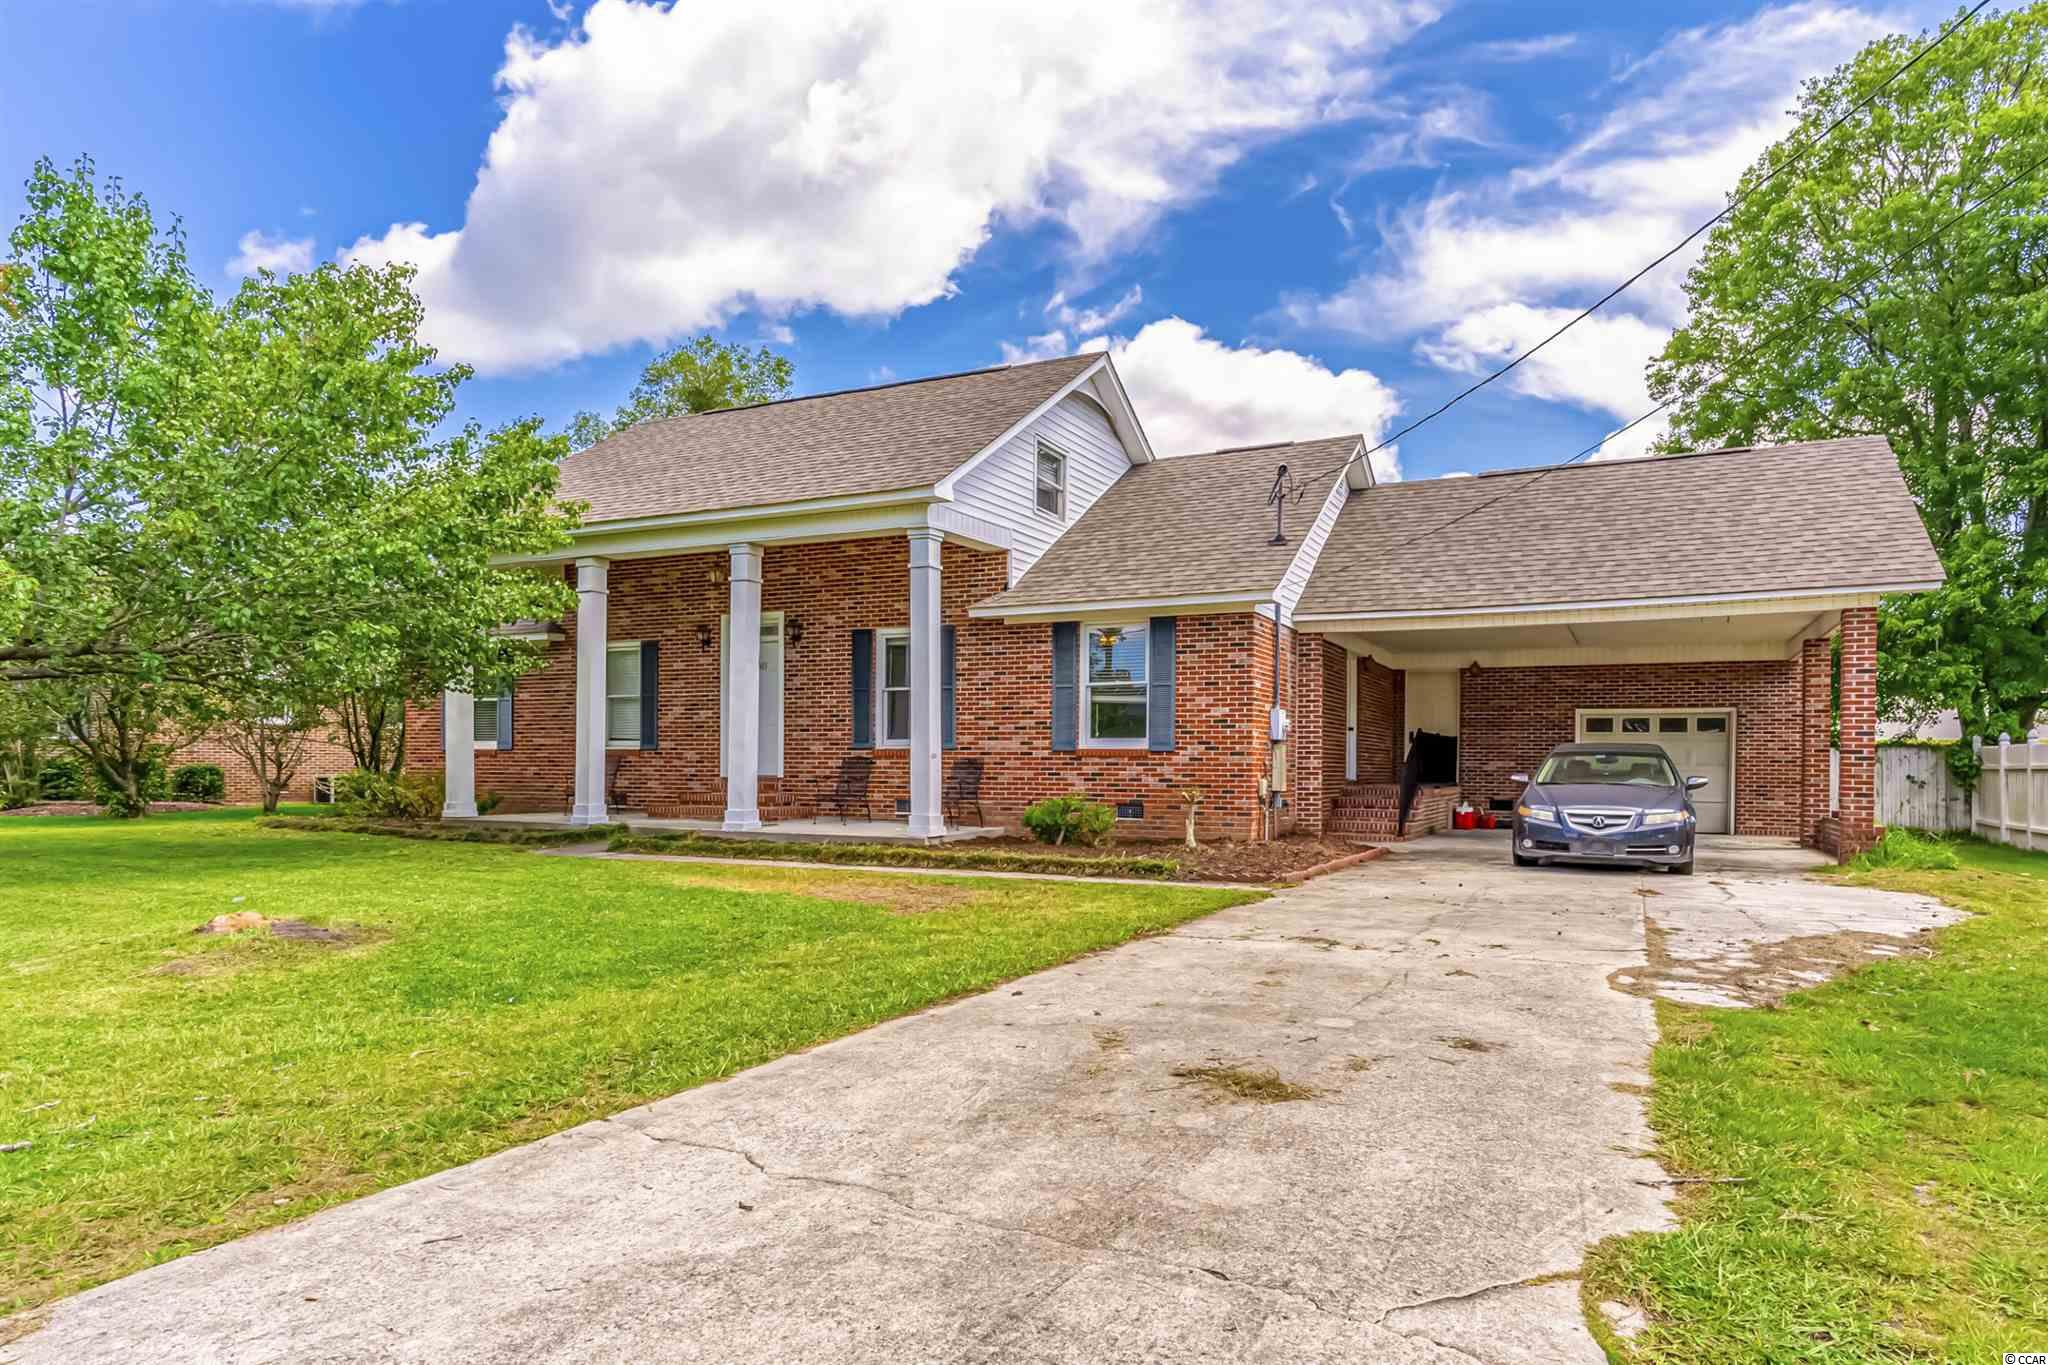 Great curb appeal. Large home with large fenced in yard. Open kitchen and living and dining room space. Very large bonus room/5th bedroom upstairs. This home needs some very minor work - paint and cosmetic touches and it will be absolutely beautiful! Great location, great yard, great layout.